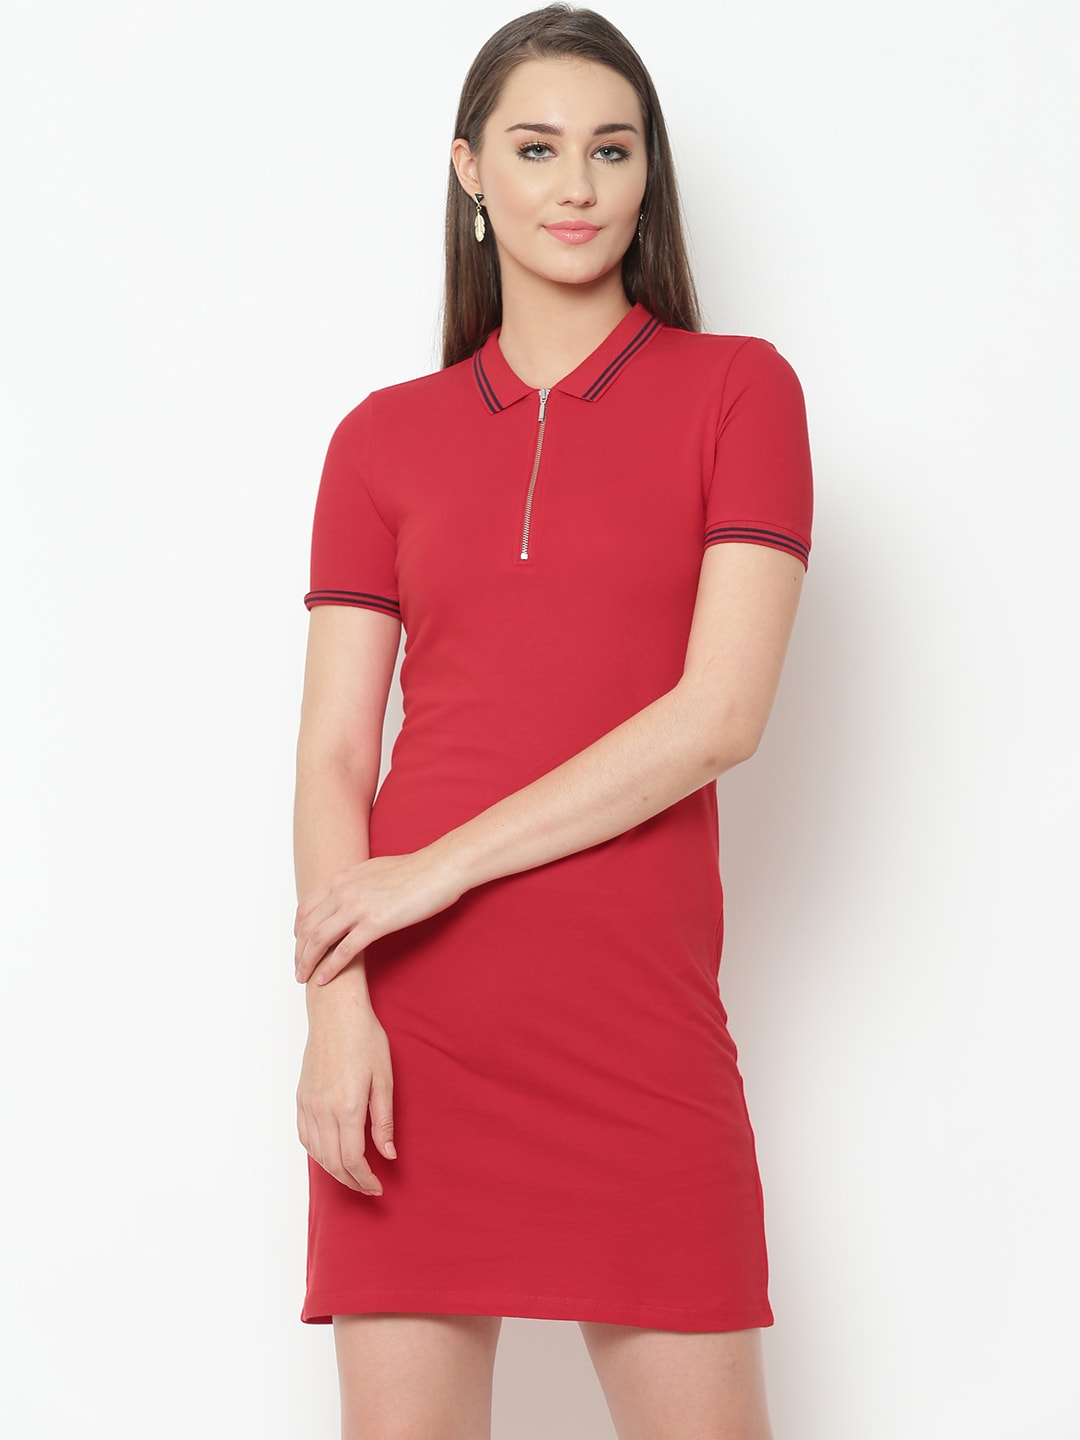 fe67f1e1850 Buy Aeropostale Women Burgundy Solid T Shirt Dress - Dresses for ...